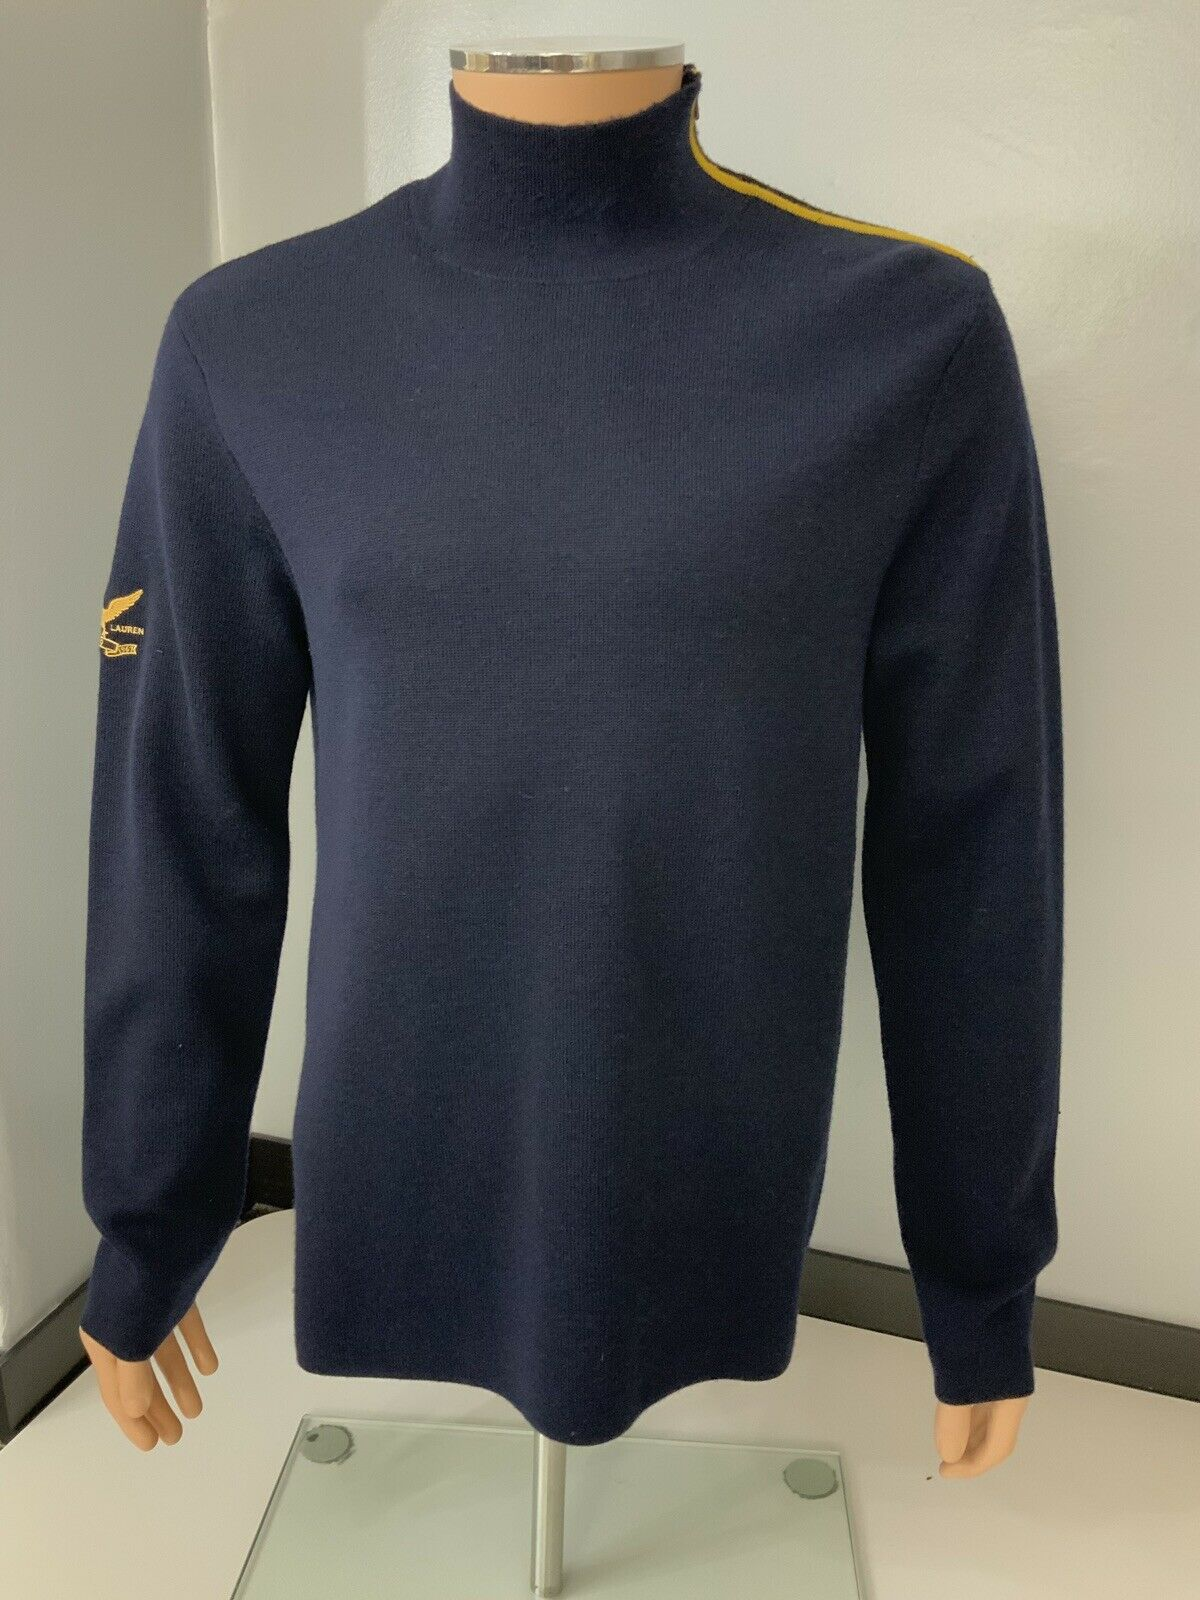 Ralph Lauren Polo Mens Jumper, Size Medium, M, bluee, Navy bluee Immaculate